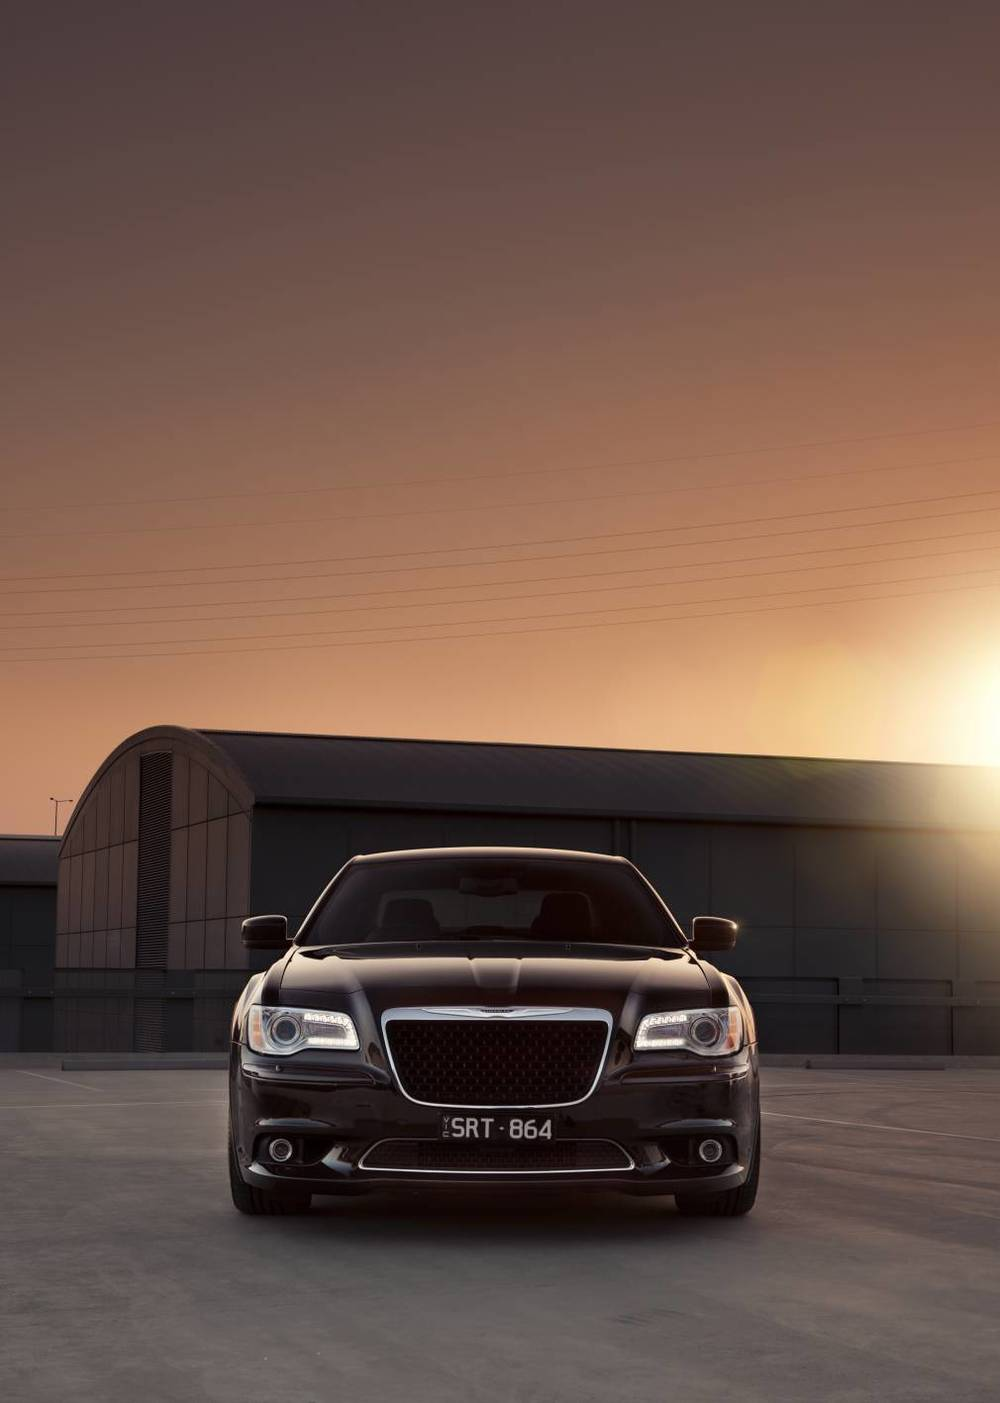 2014 Chrysler 300 SRT8 Core c.jpg